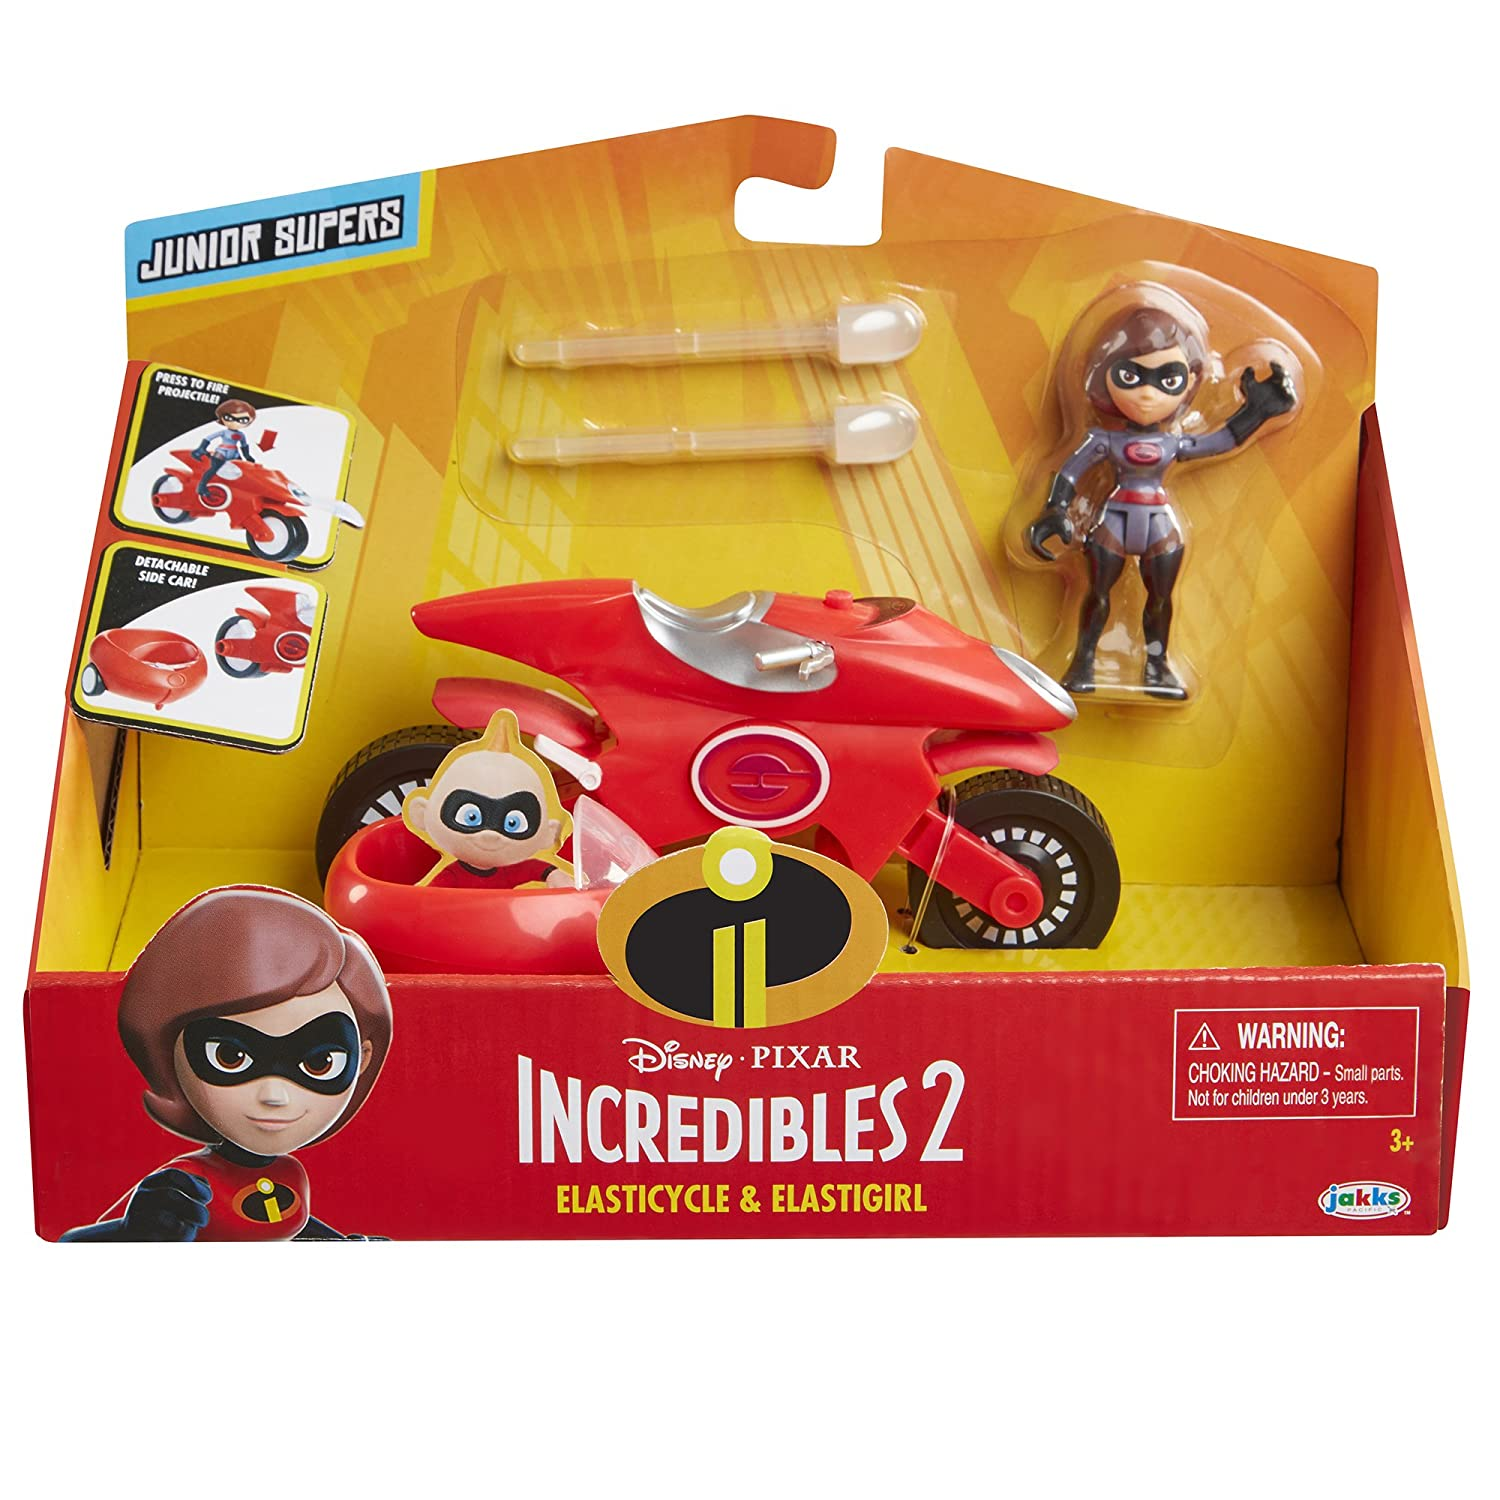 Incredible Junior Supers Action Figure Play Set The Incredibles 2 Incredibile Car /& Mr